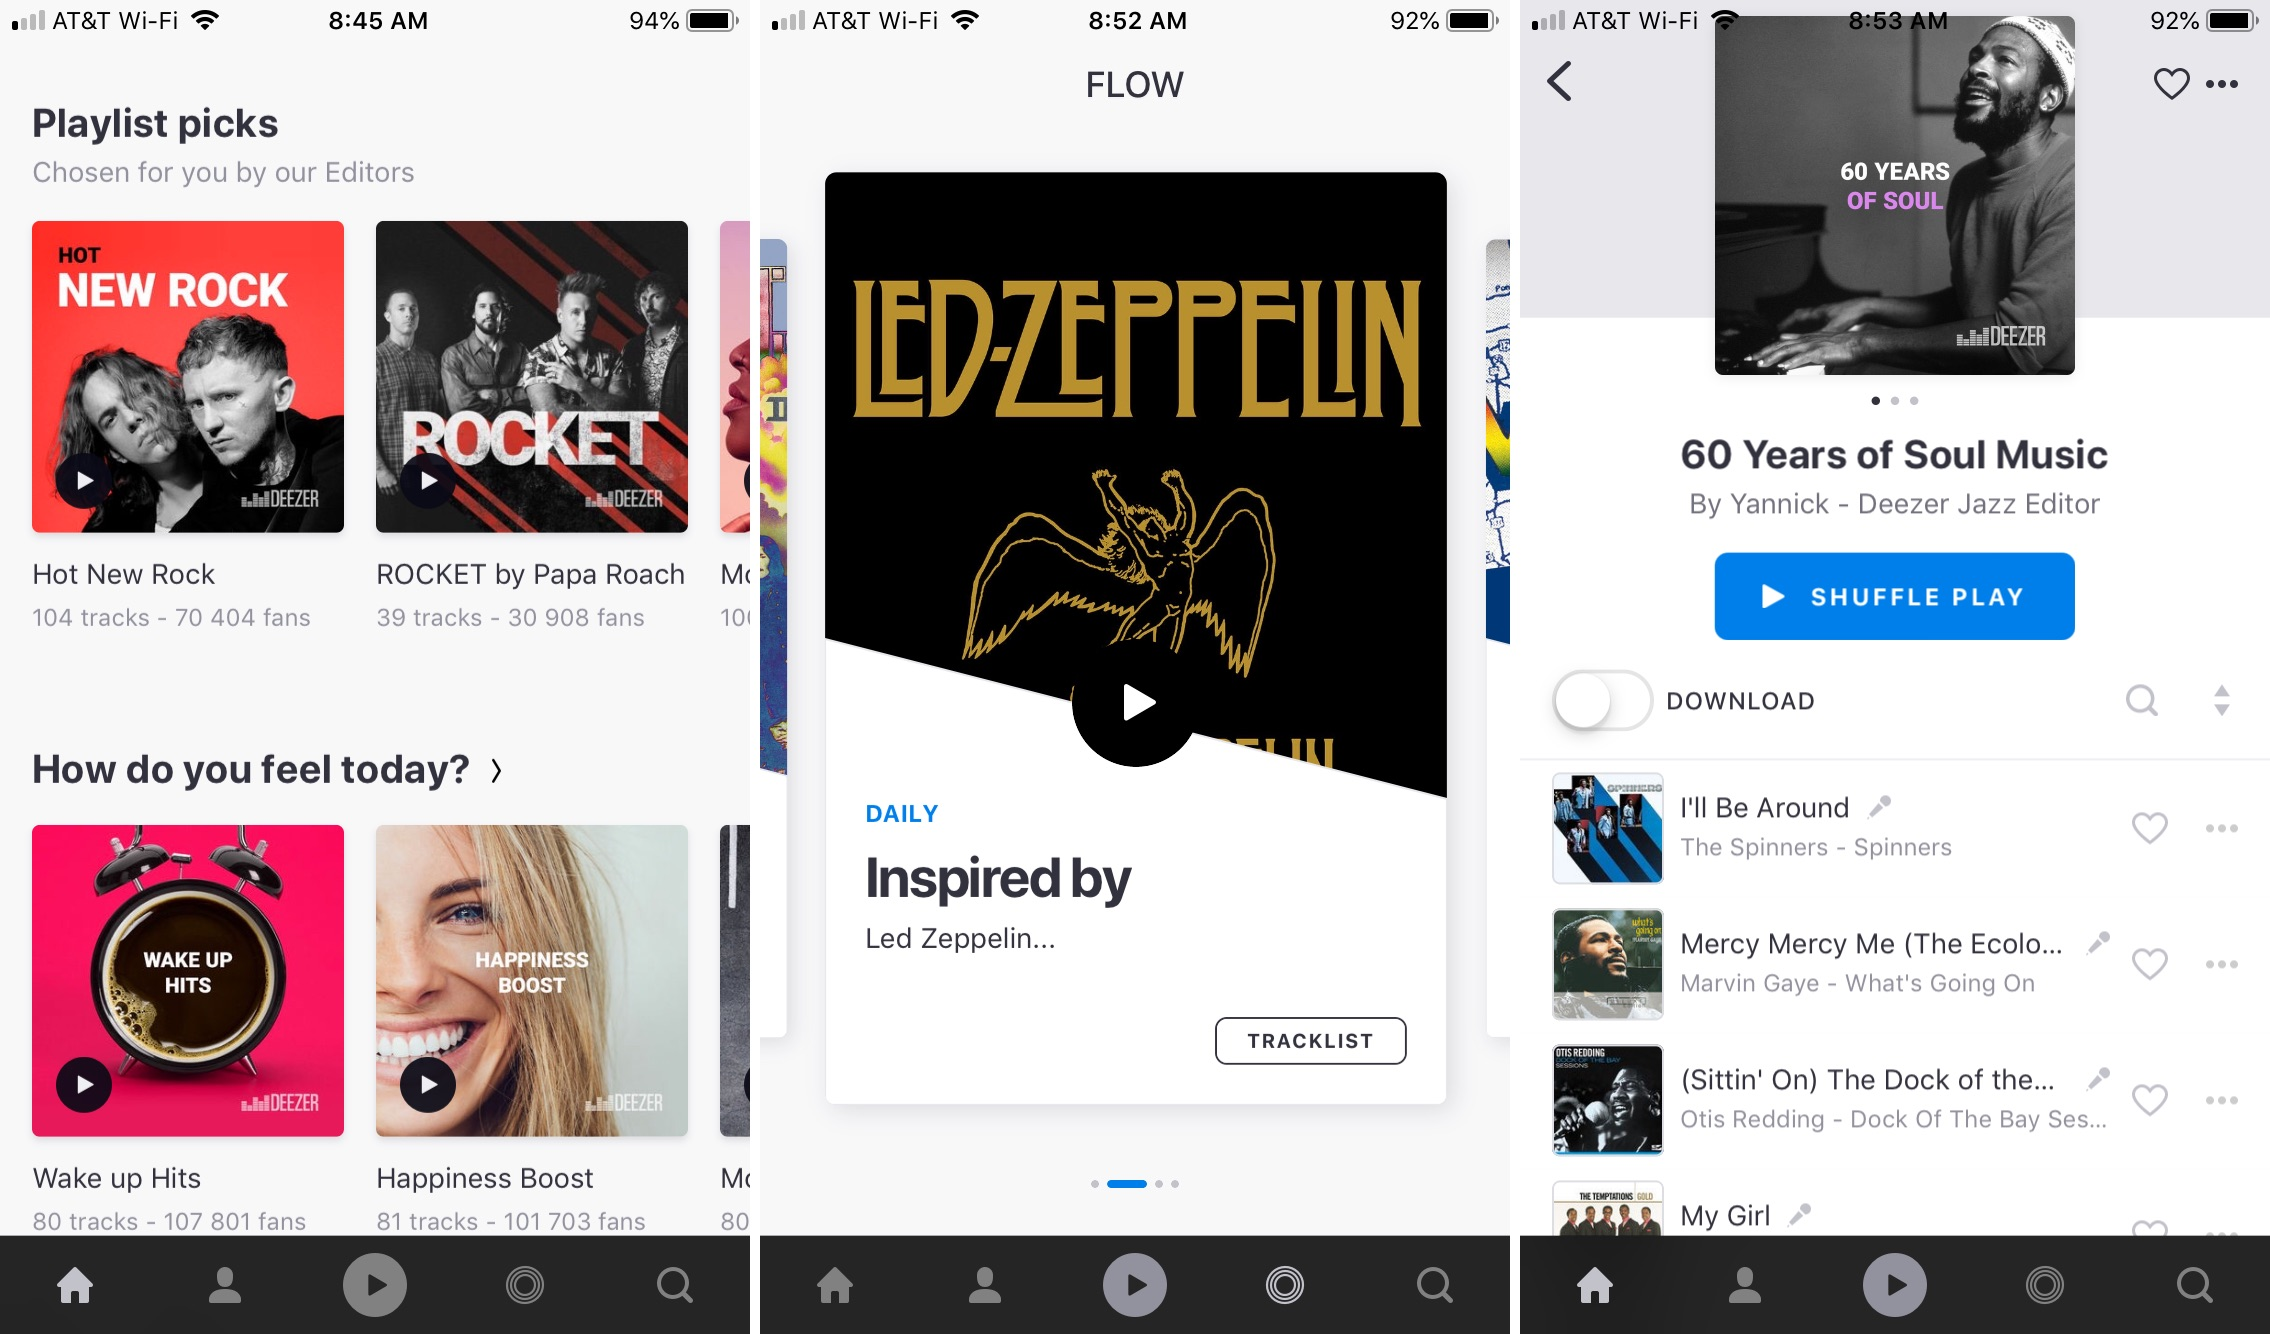 Deezer app on iPhone